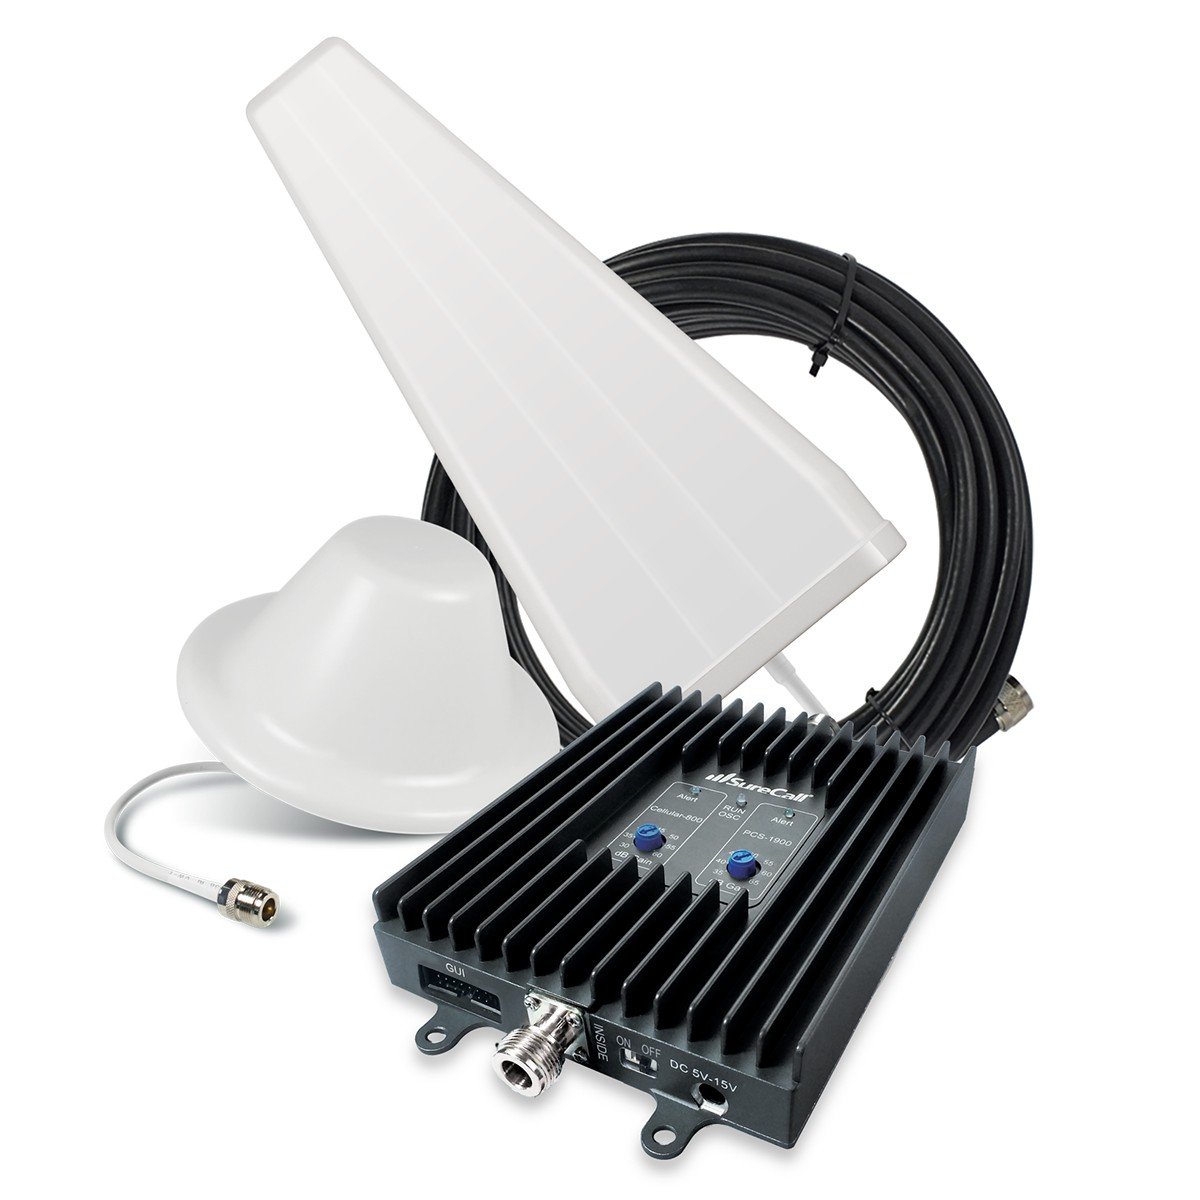 SureCall [FlexPro] Voice & Text Cell Phone Signal Booster Yagi/ Dome Kit [Homes up to 6,000 sq ft]